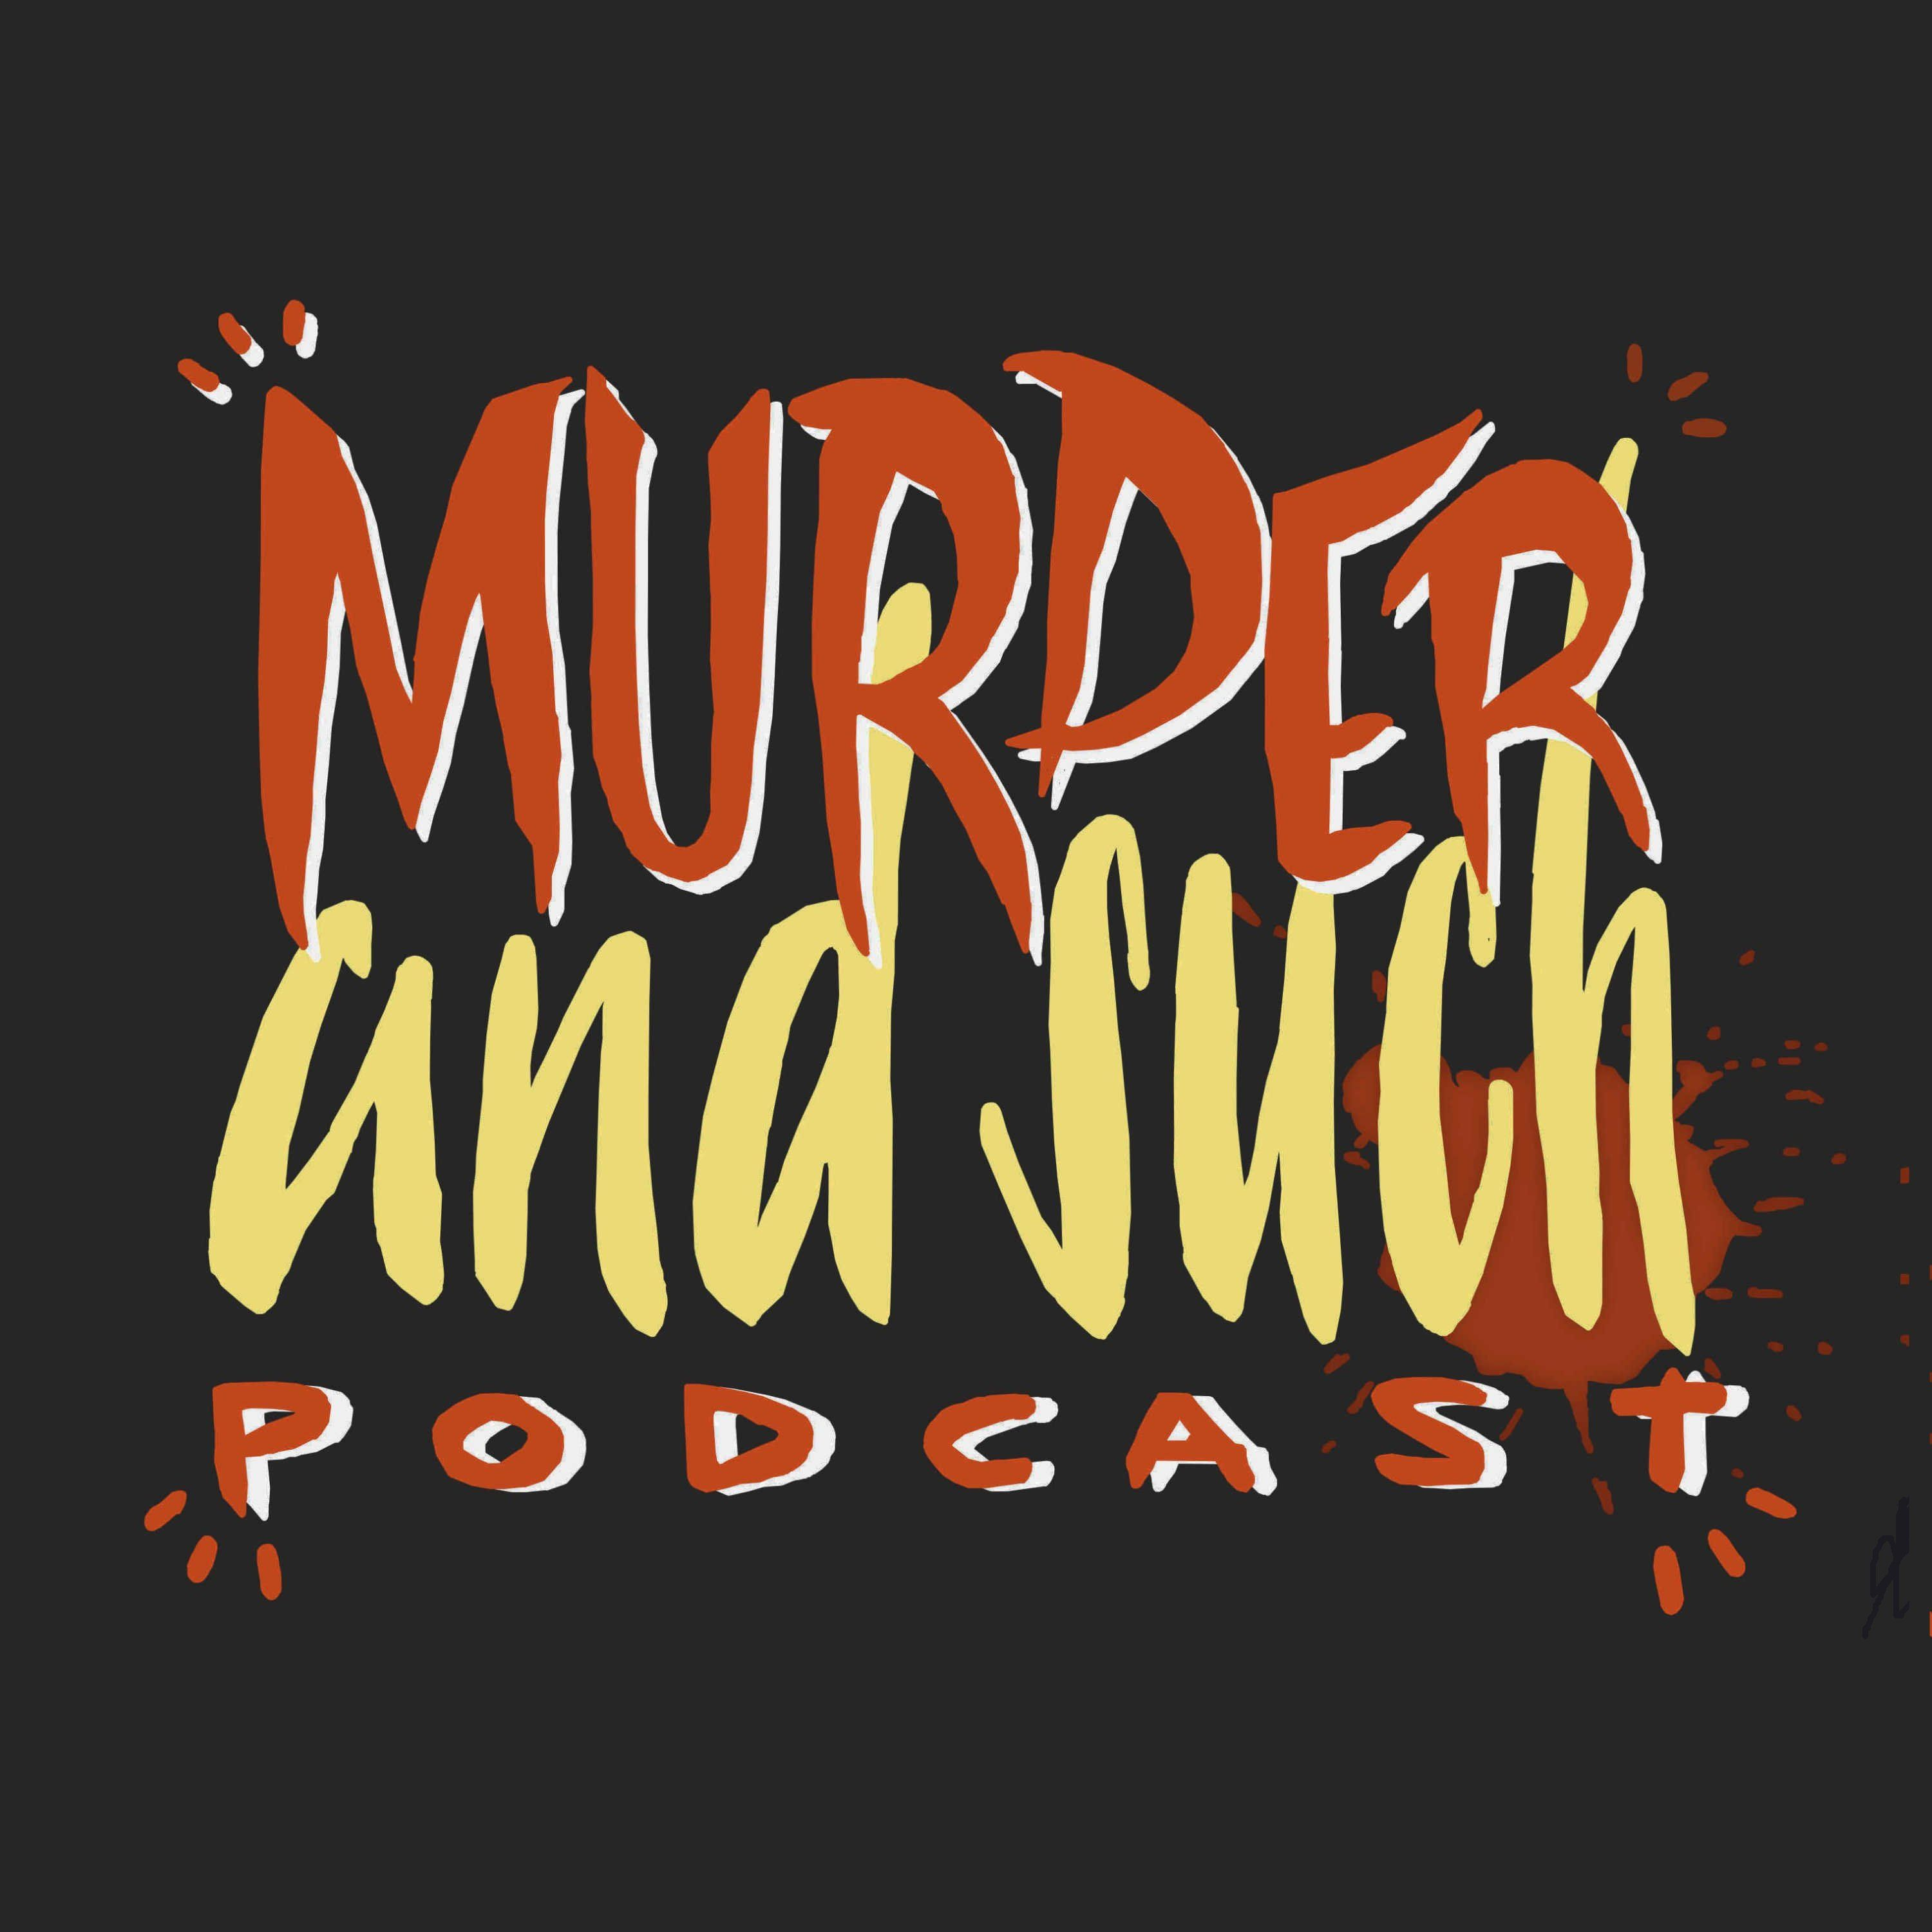 Episode 76 - All in the Family